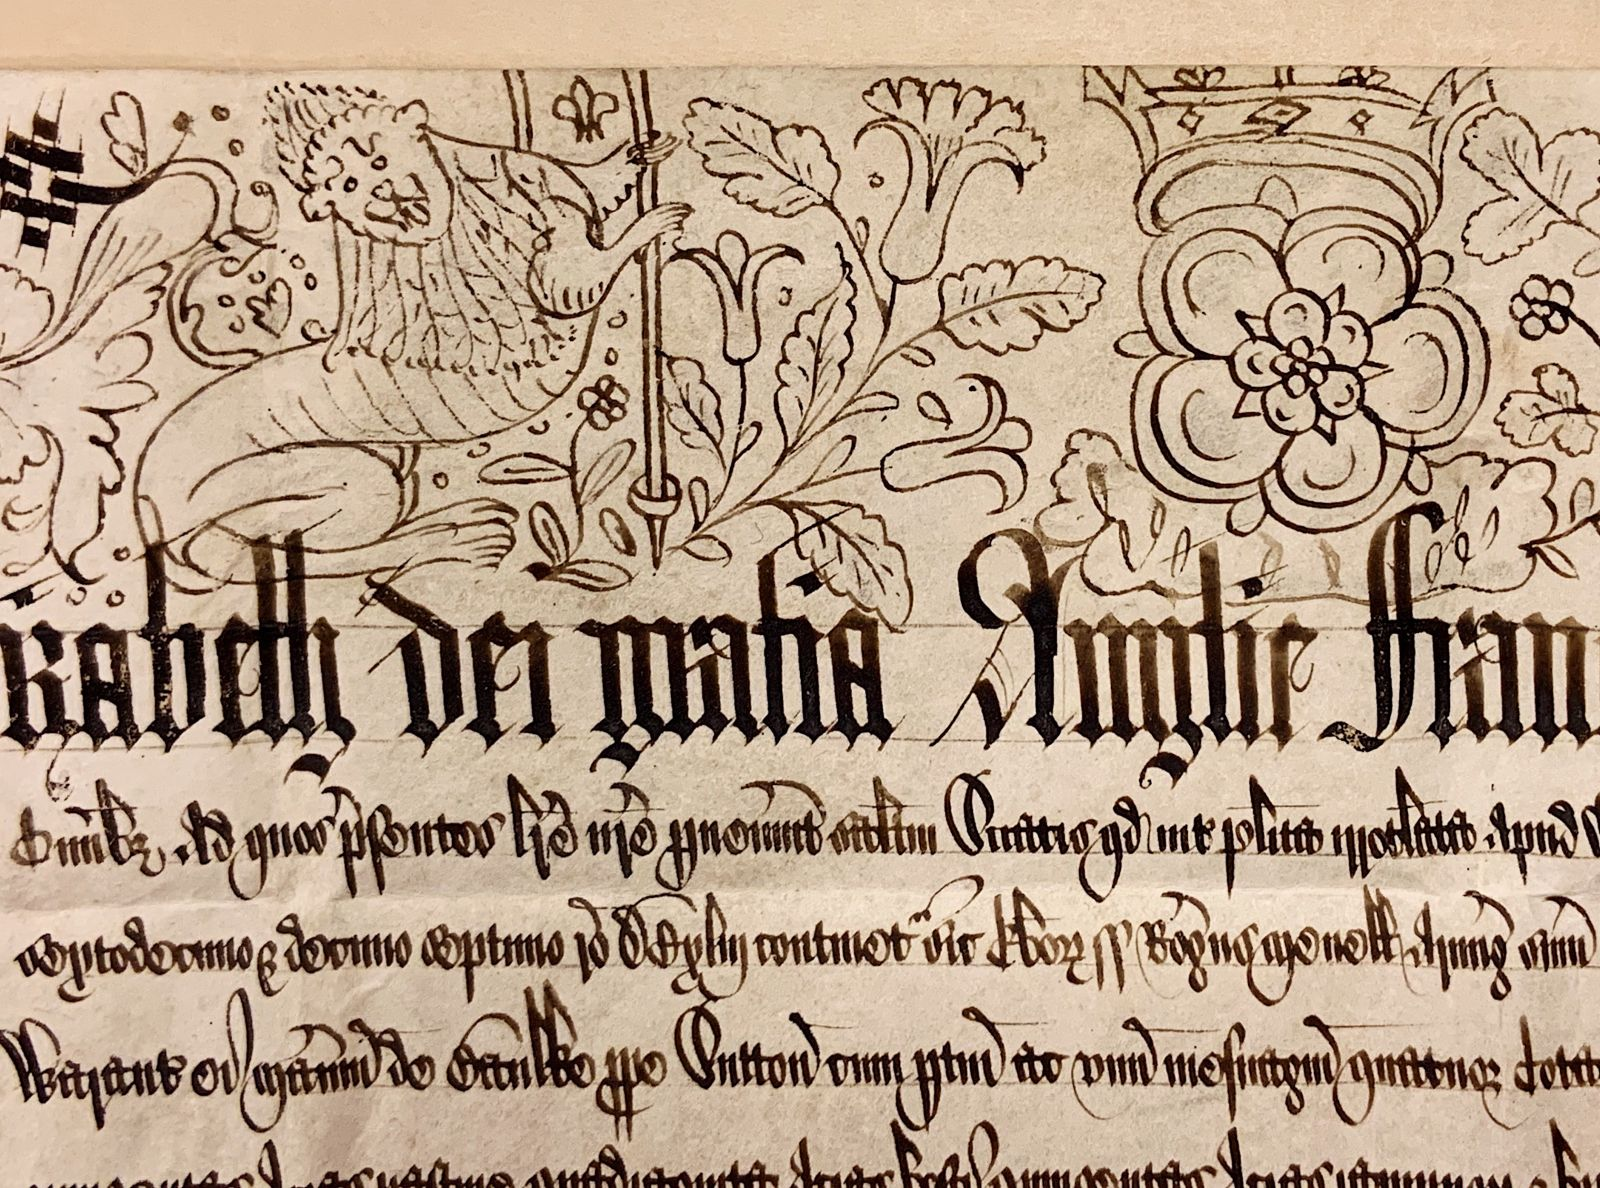 A close-up of the manuscript document's upper margin, which includes several hand-drawn illustrations. This image shows a lion, meant to represent King Henry VIII, with its paws grasping at a rod or scepter of some kind. To the left of the lion is a Tudor rose. Beneath these illustrations, the text of the document begins. The first line features text in large, bold calligraphy, with every succeeding line in smaller calligraphy. All text written in Latin.